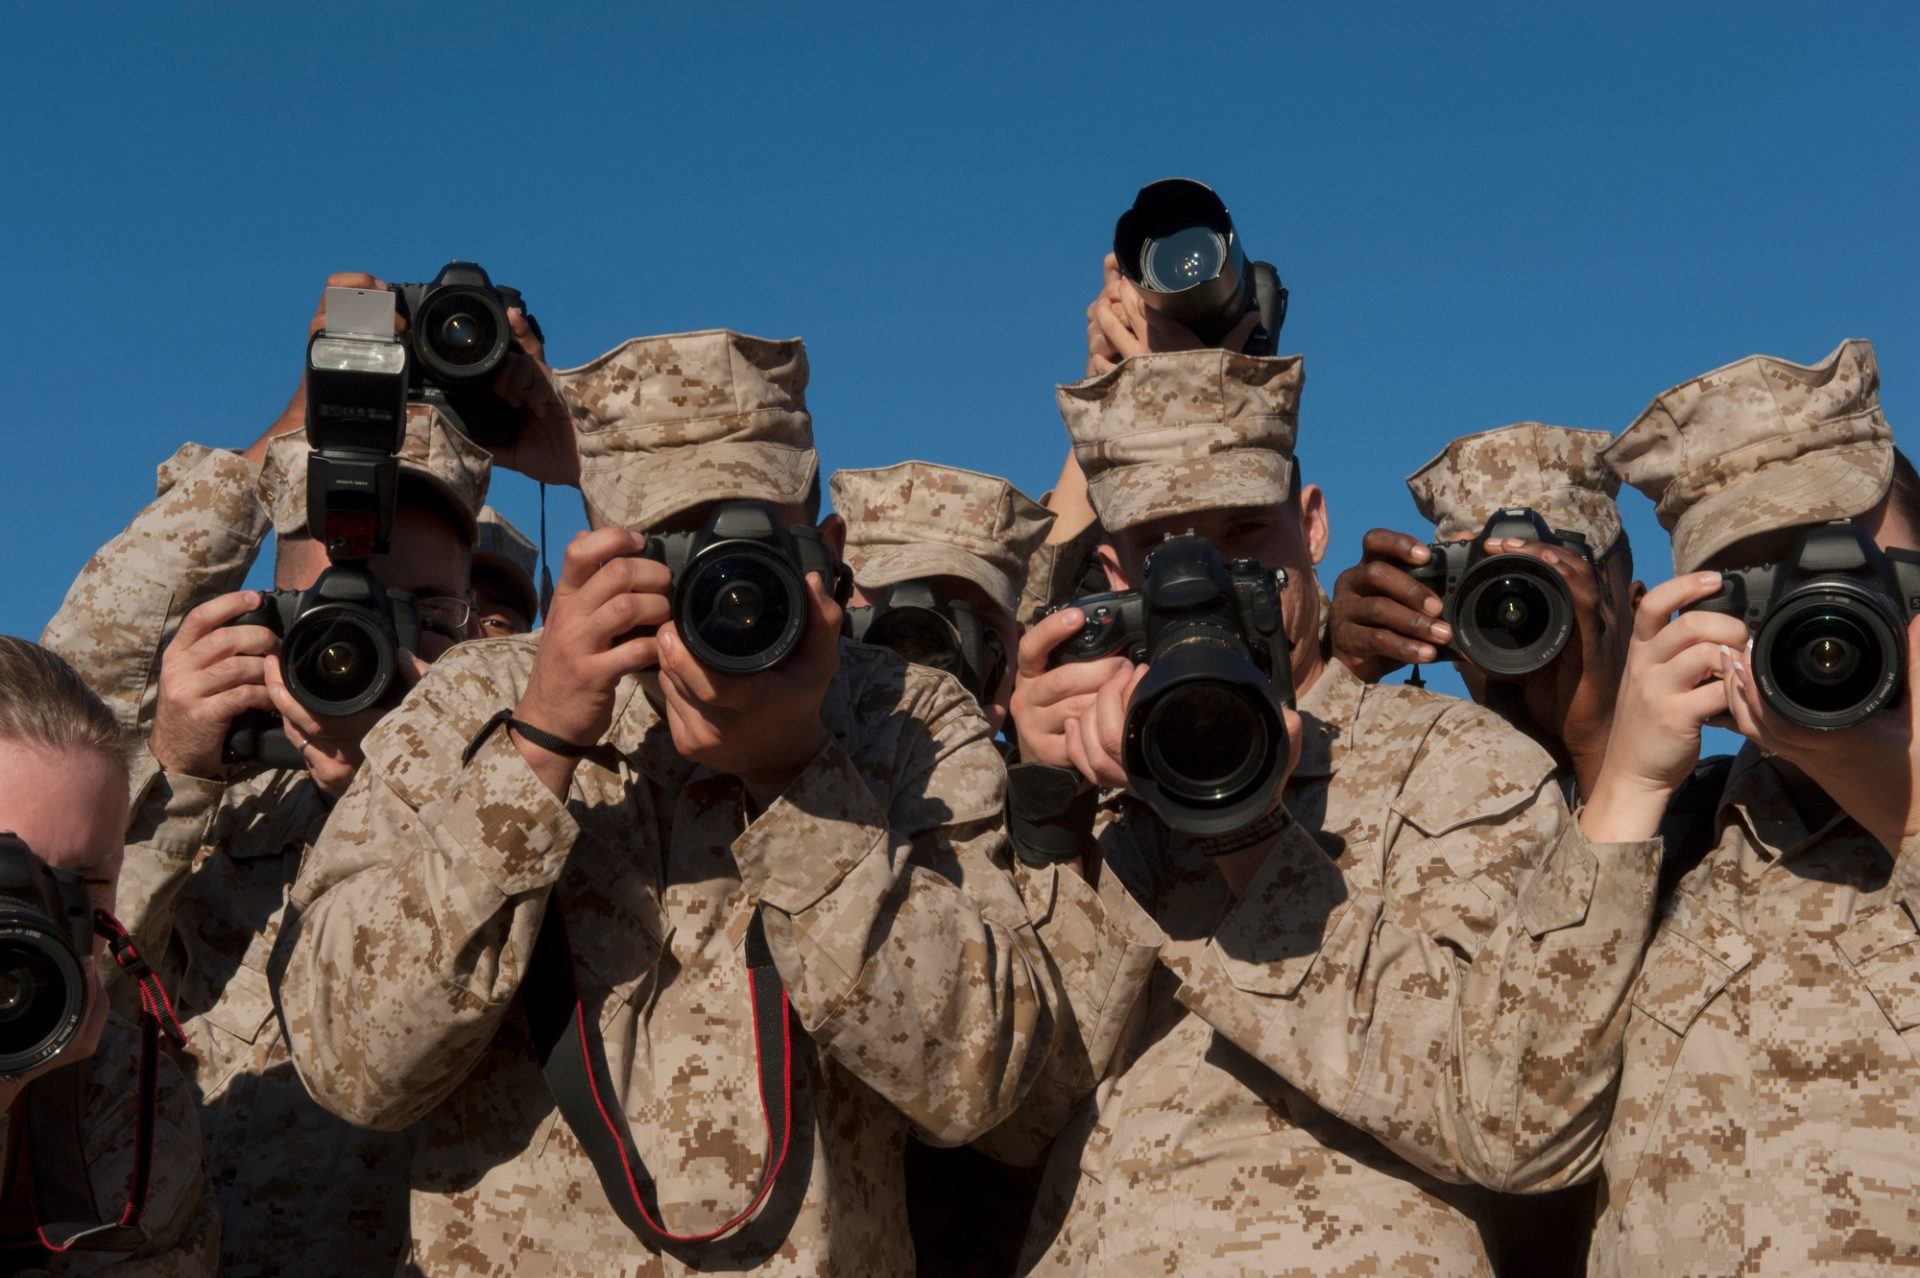 Photo: A group of military photographers.